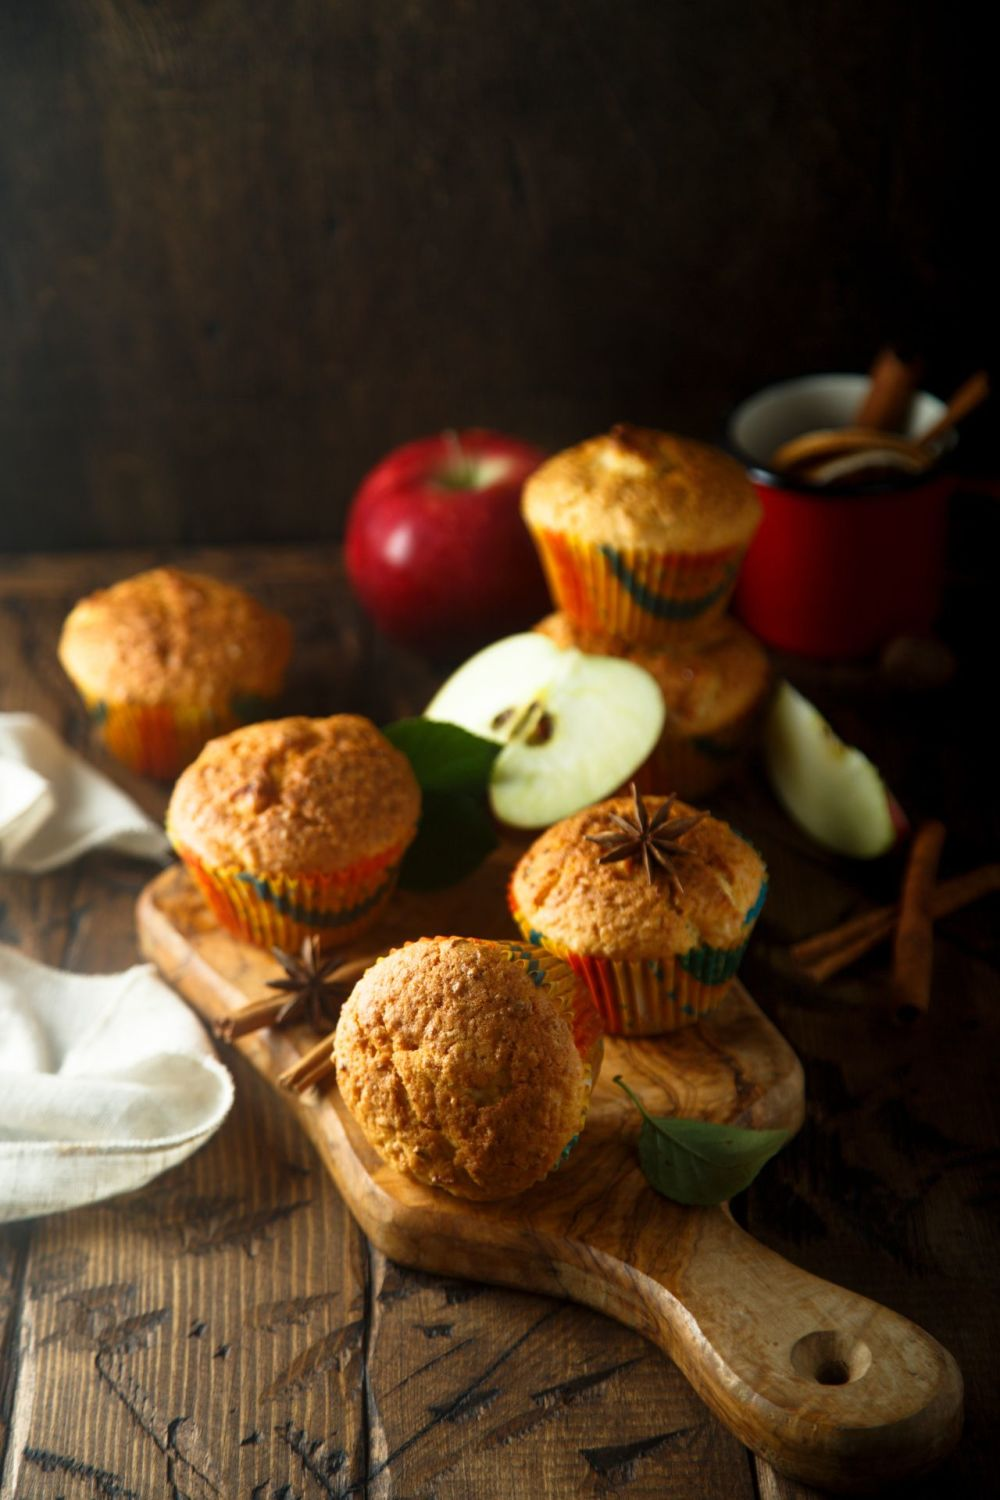 Apple and Cinnamon Muffin Recipe